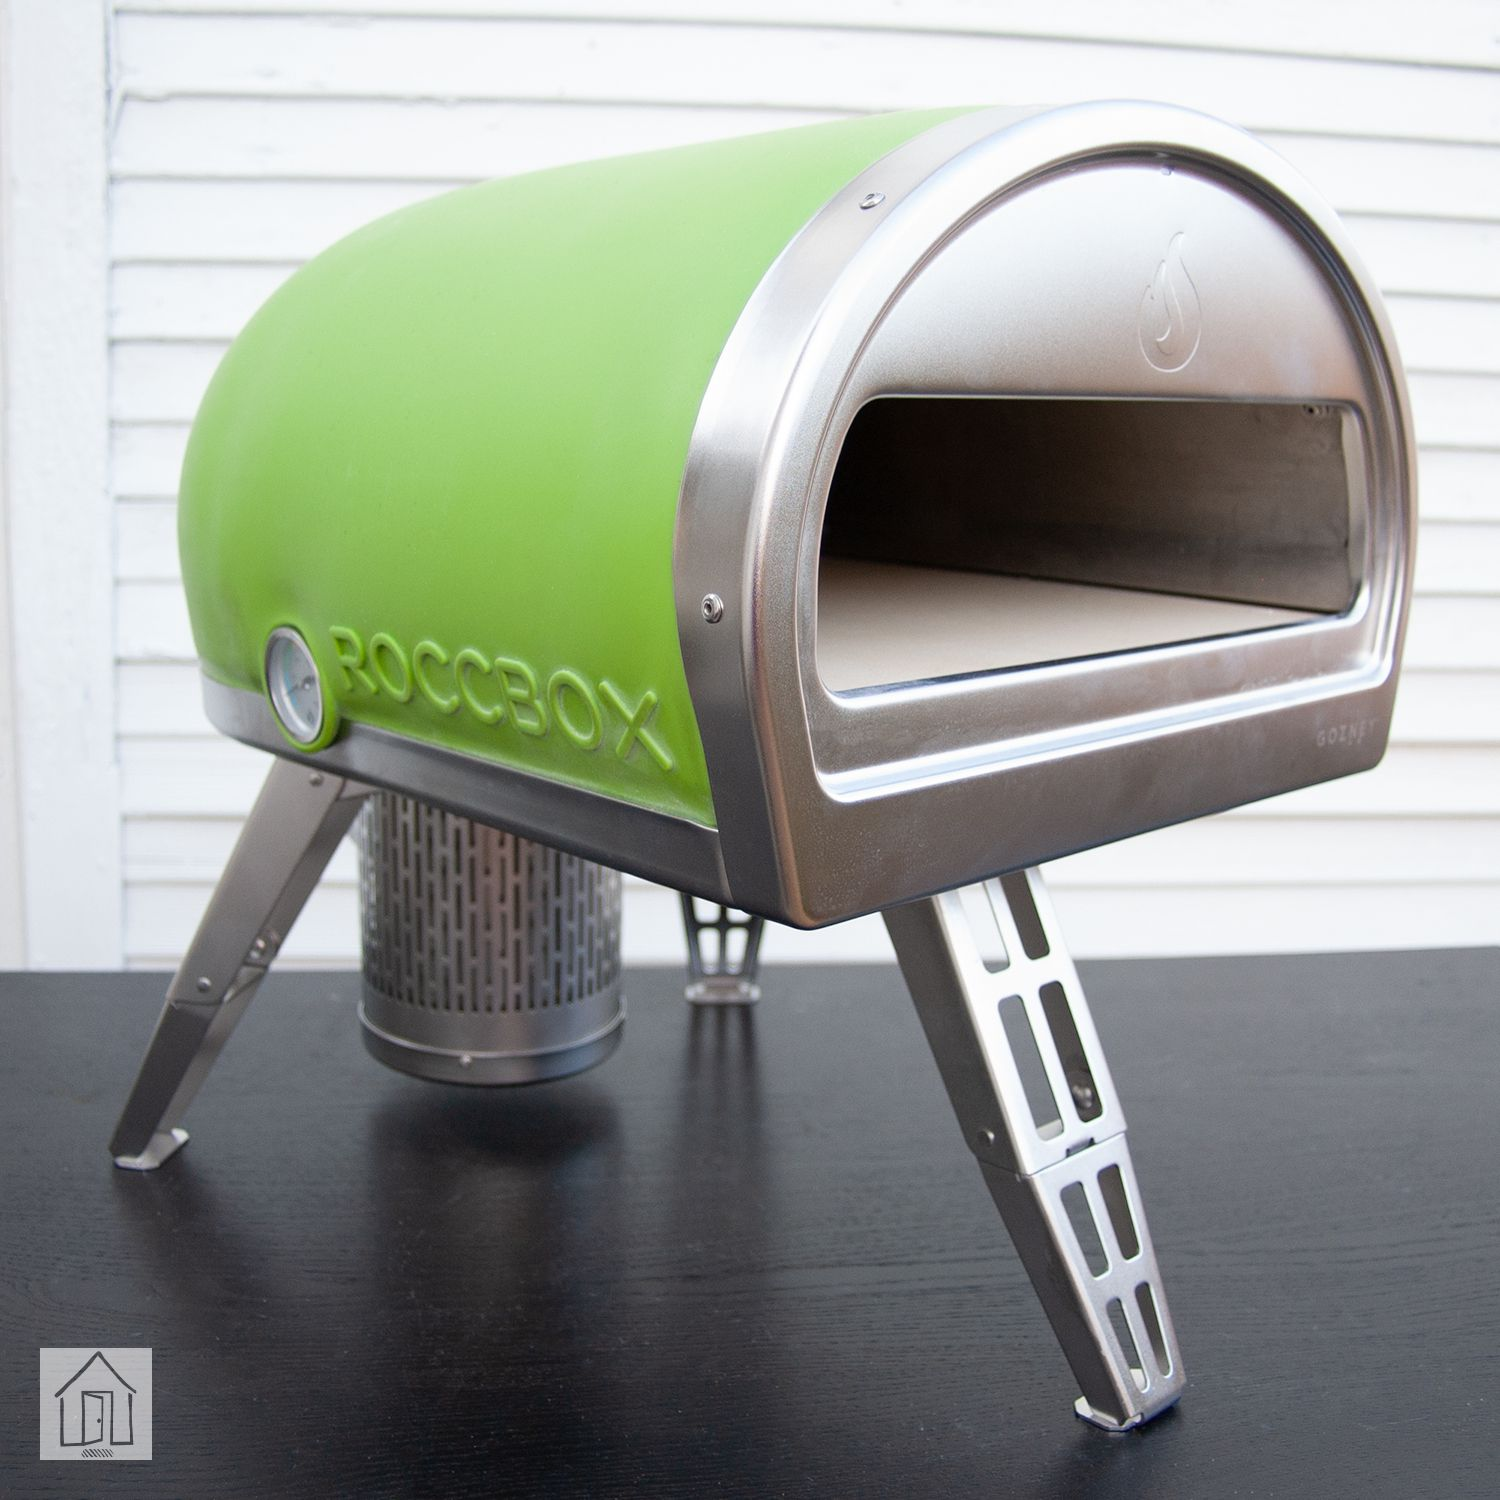 Roccbox Portable Pizza Oven Review Effective But Expensive